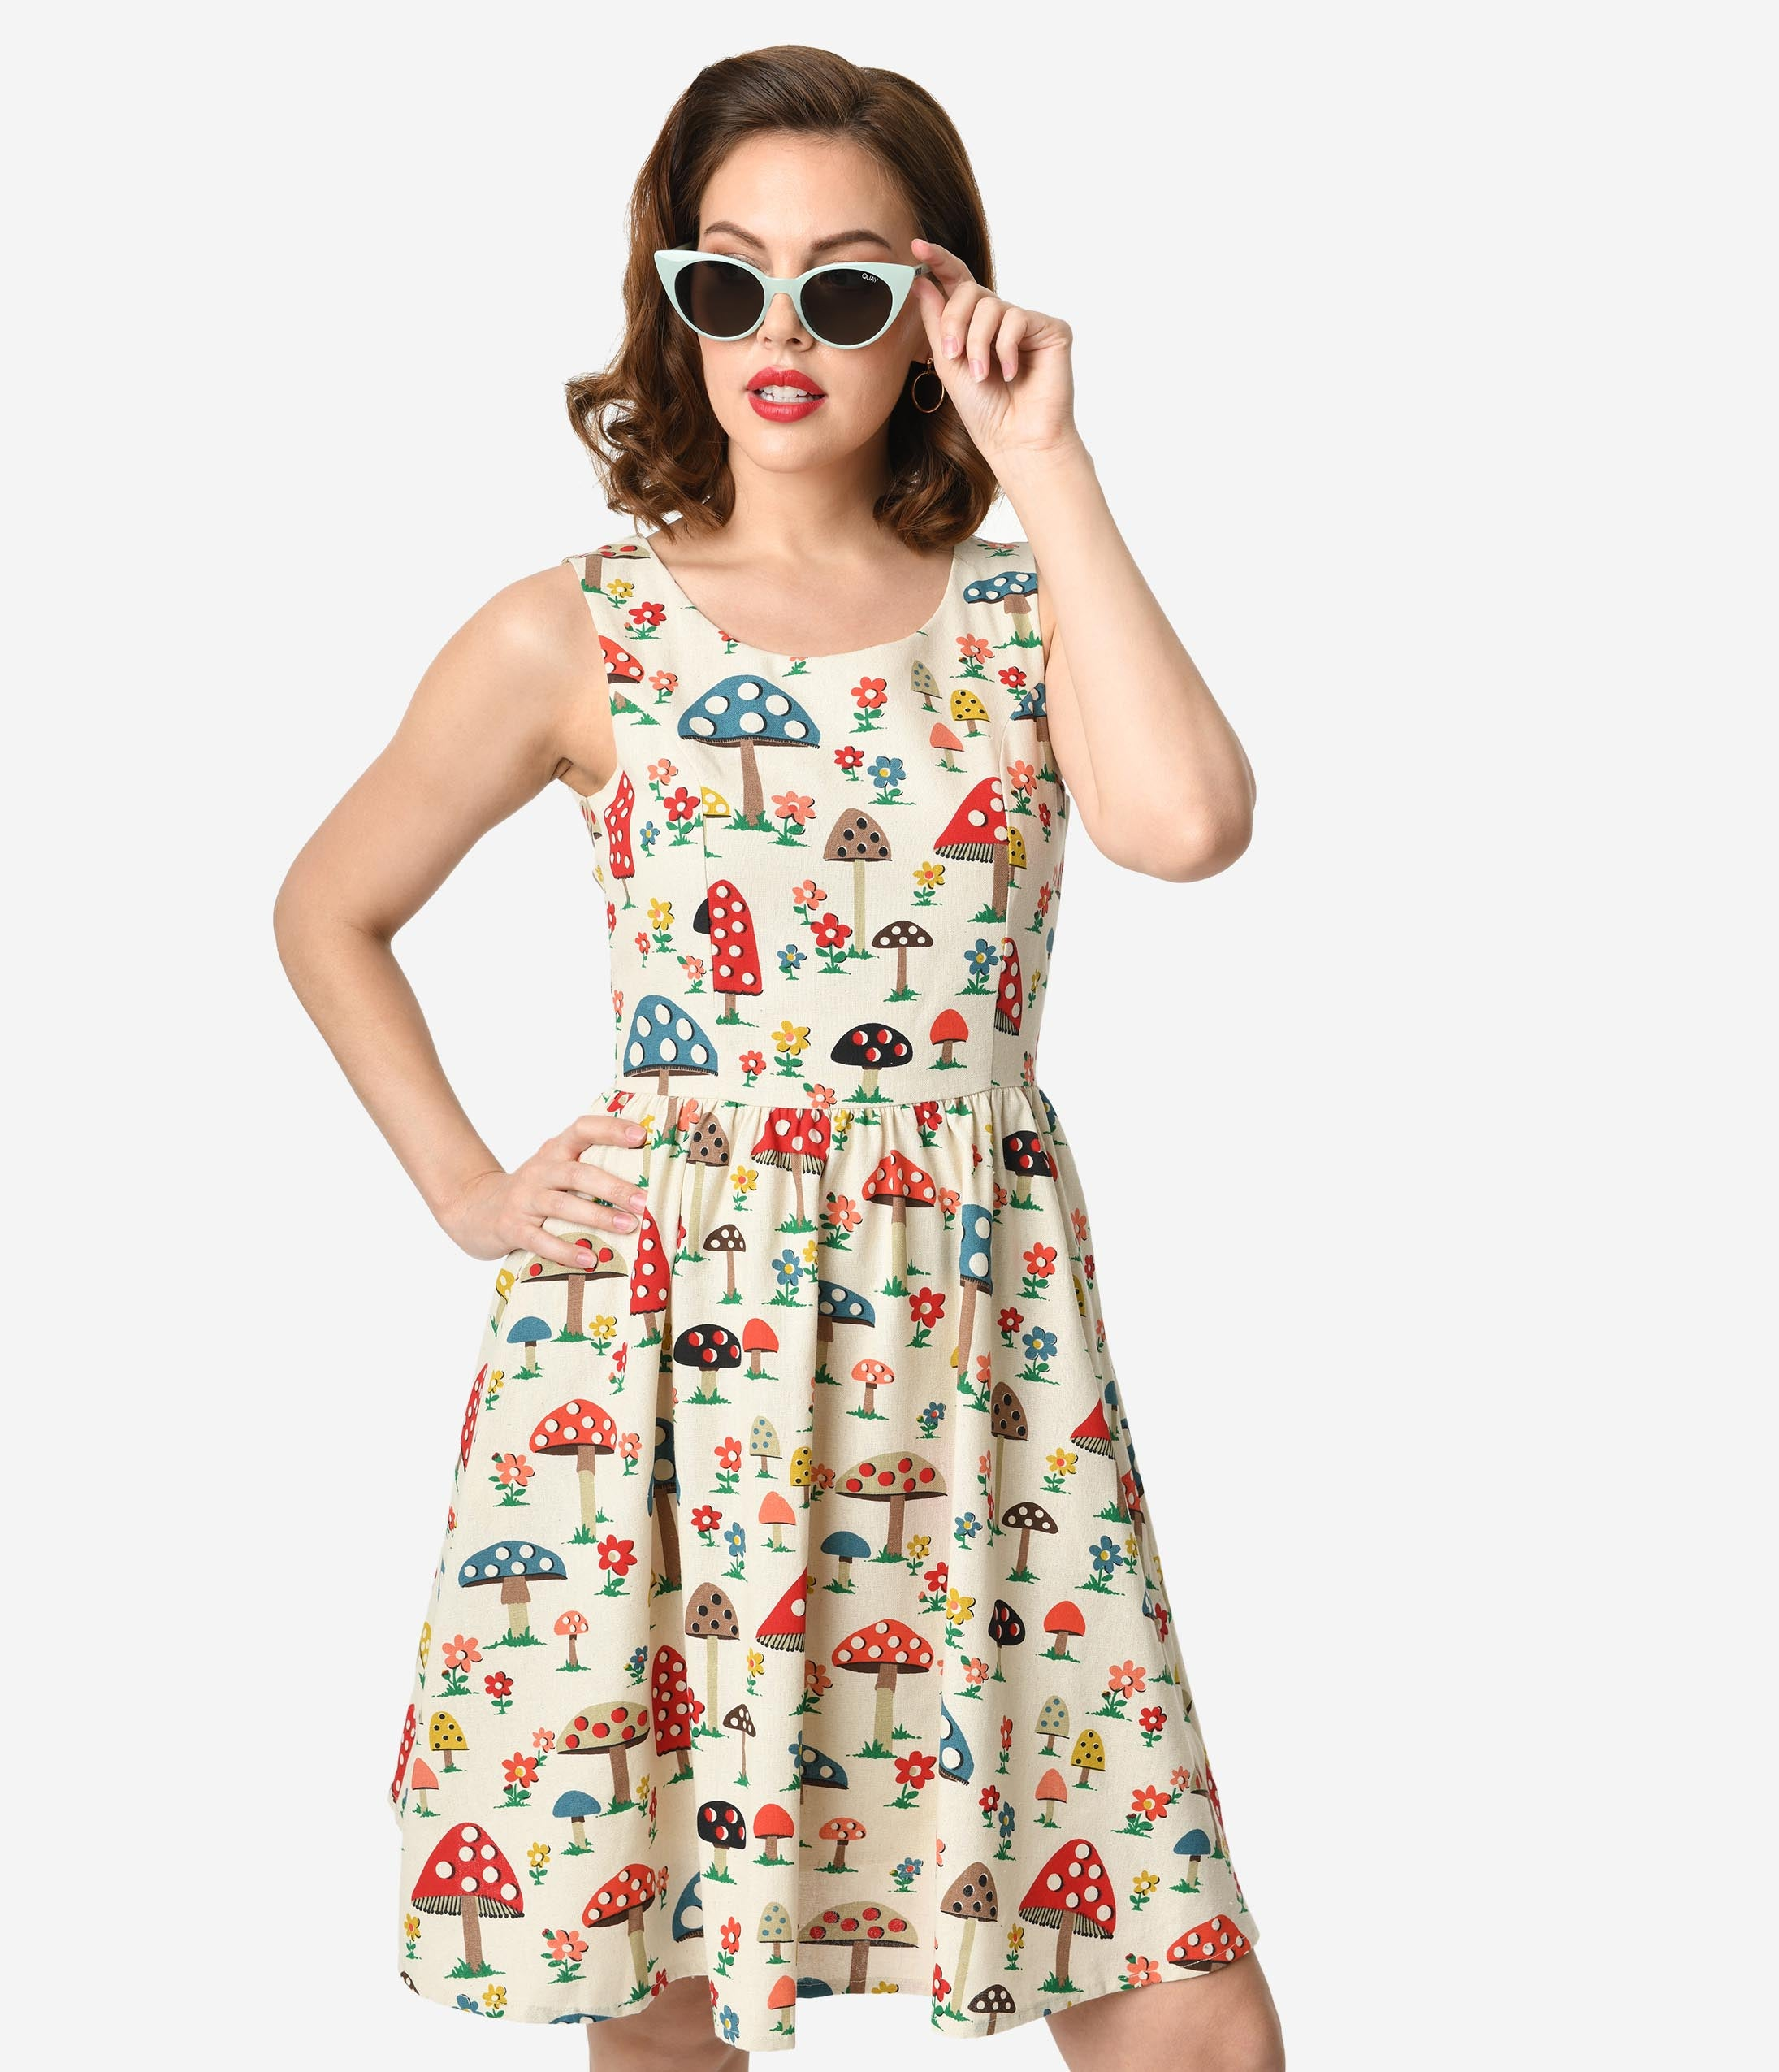 eae3d6359d4 1960s Style Cream Mushroom Print Cotton Sleeveless Fit   Flare Dress